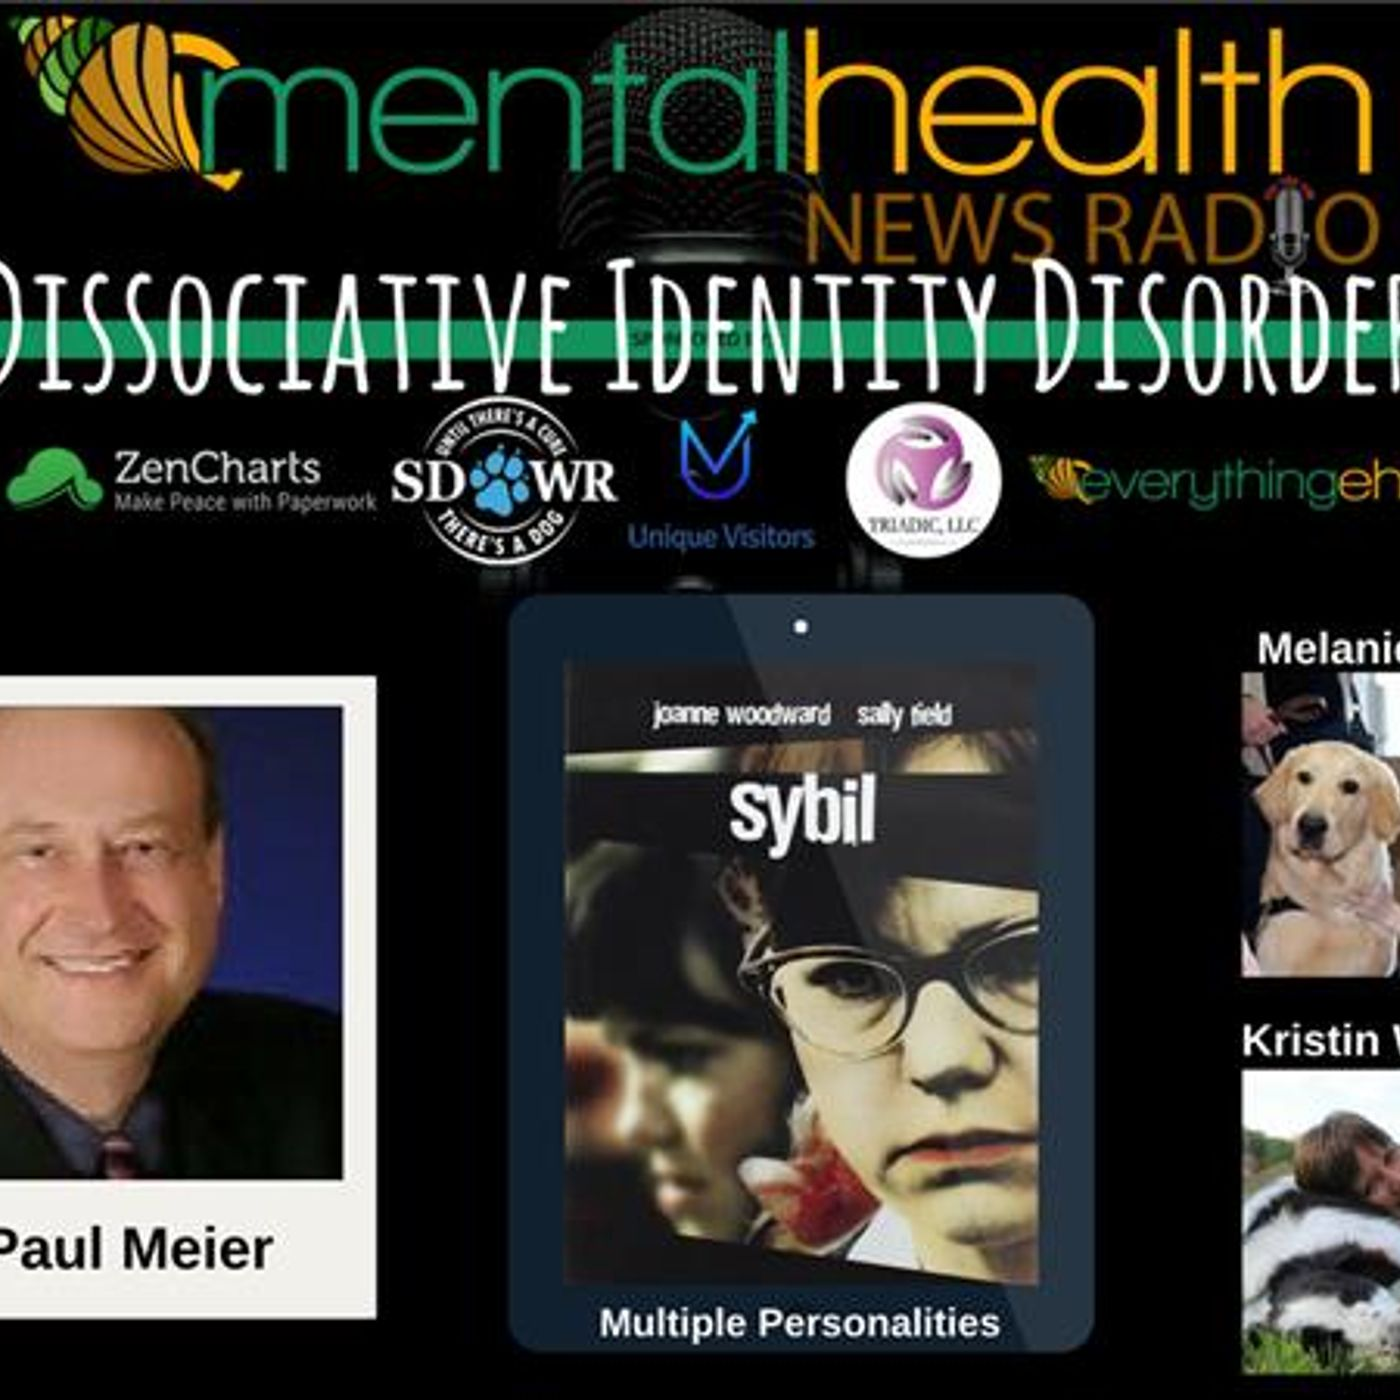 Mental Health News Radio - Round Table Discussions with Dr. Paul Meier: Dissociative Identity Disorder